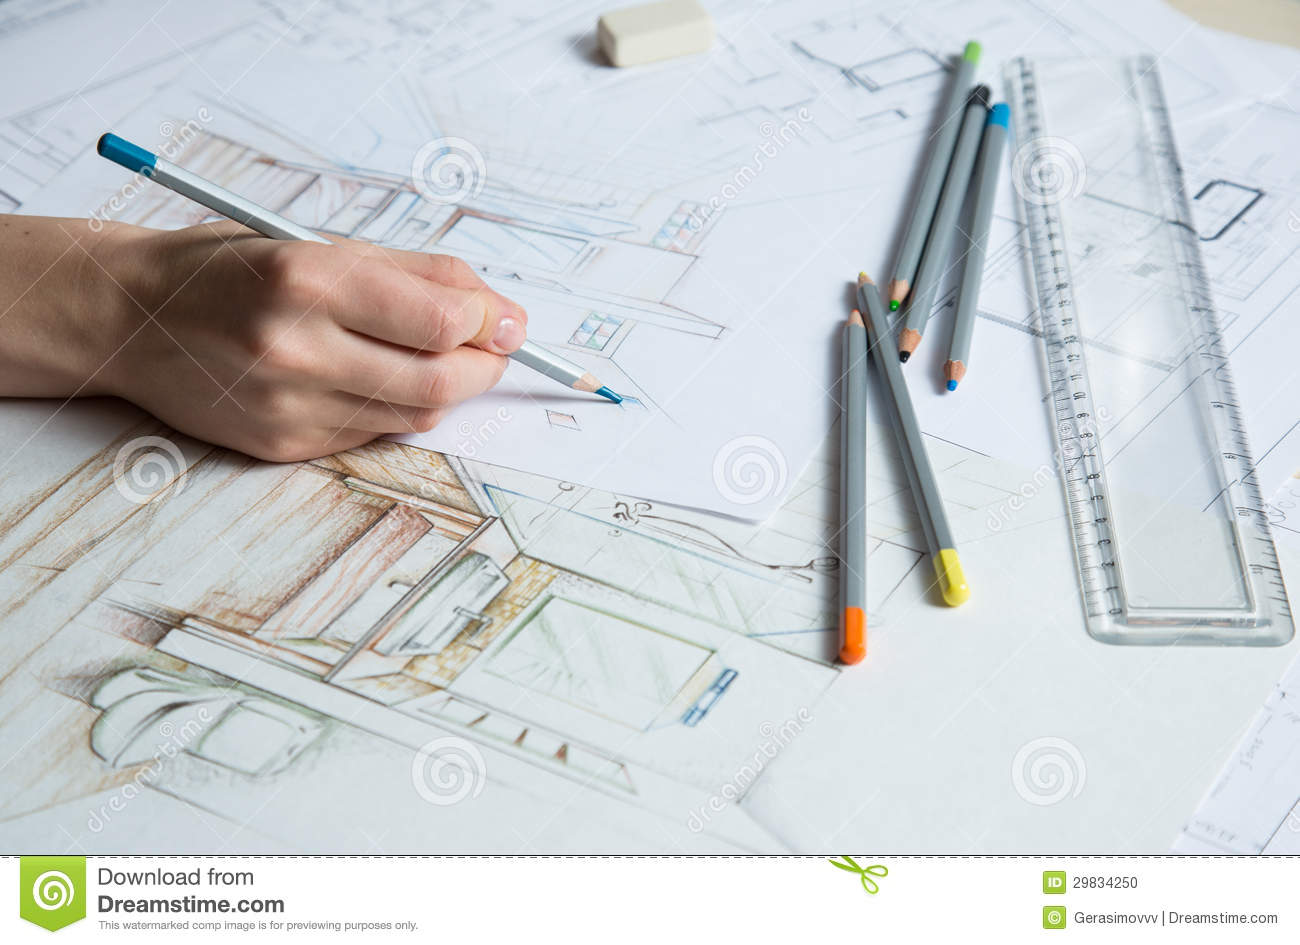 Interior Design Color Sketches Hand Drawing Details Of The Interior Stock Photo  Image 29834250